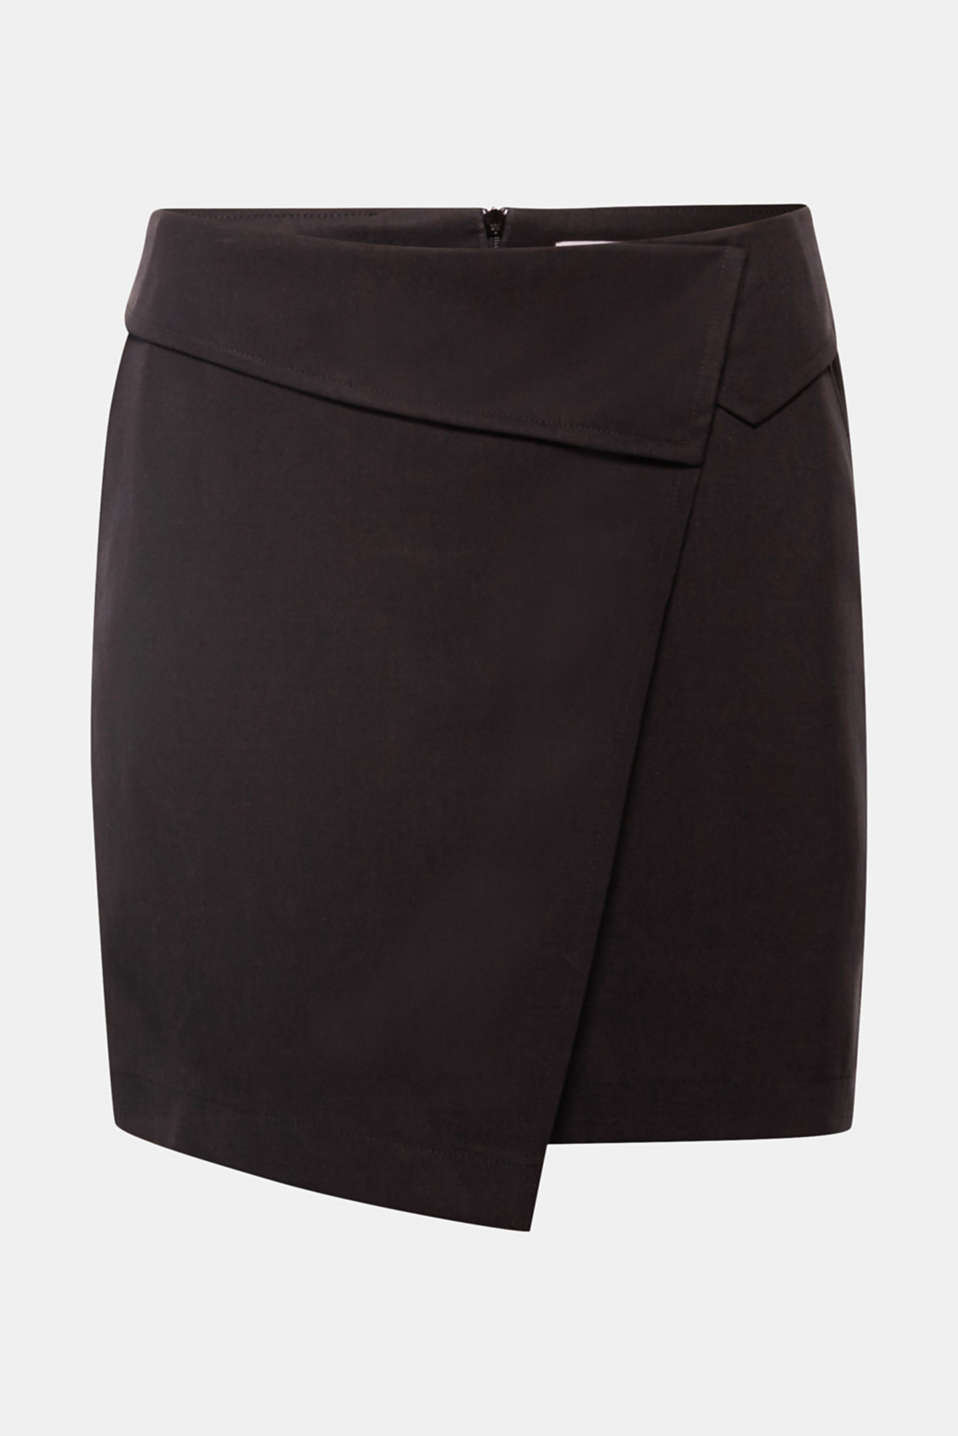 This soft lyocell skirt adds sophisticated new style to your wardrobe with its asymmetric wrap-over effect and beautiful turn-down waistband.